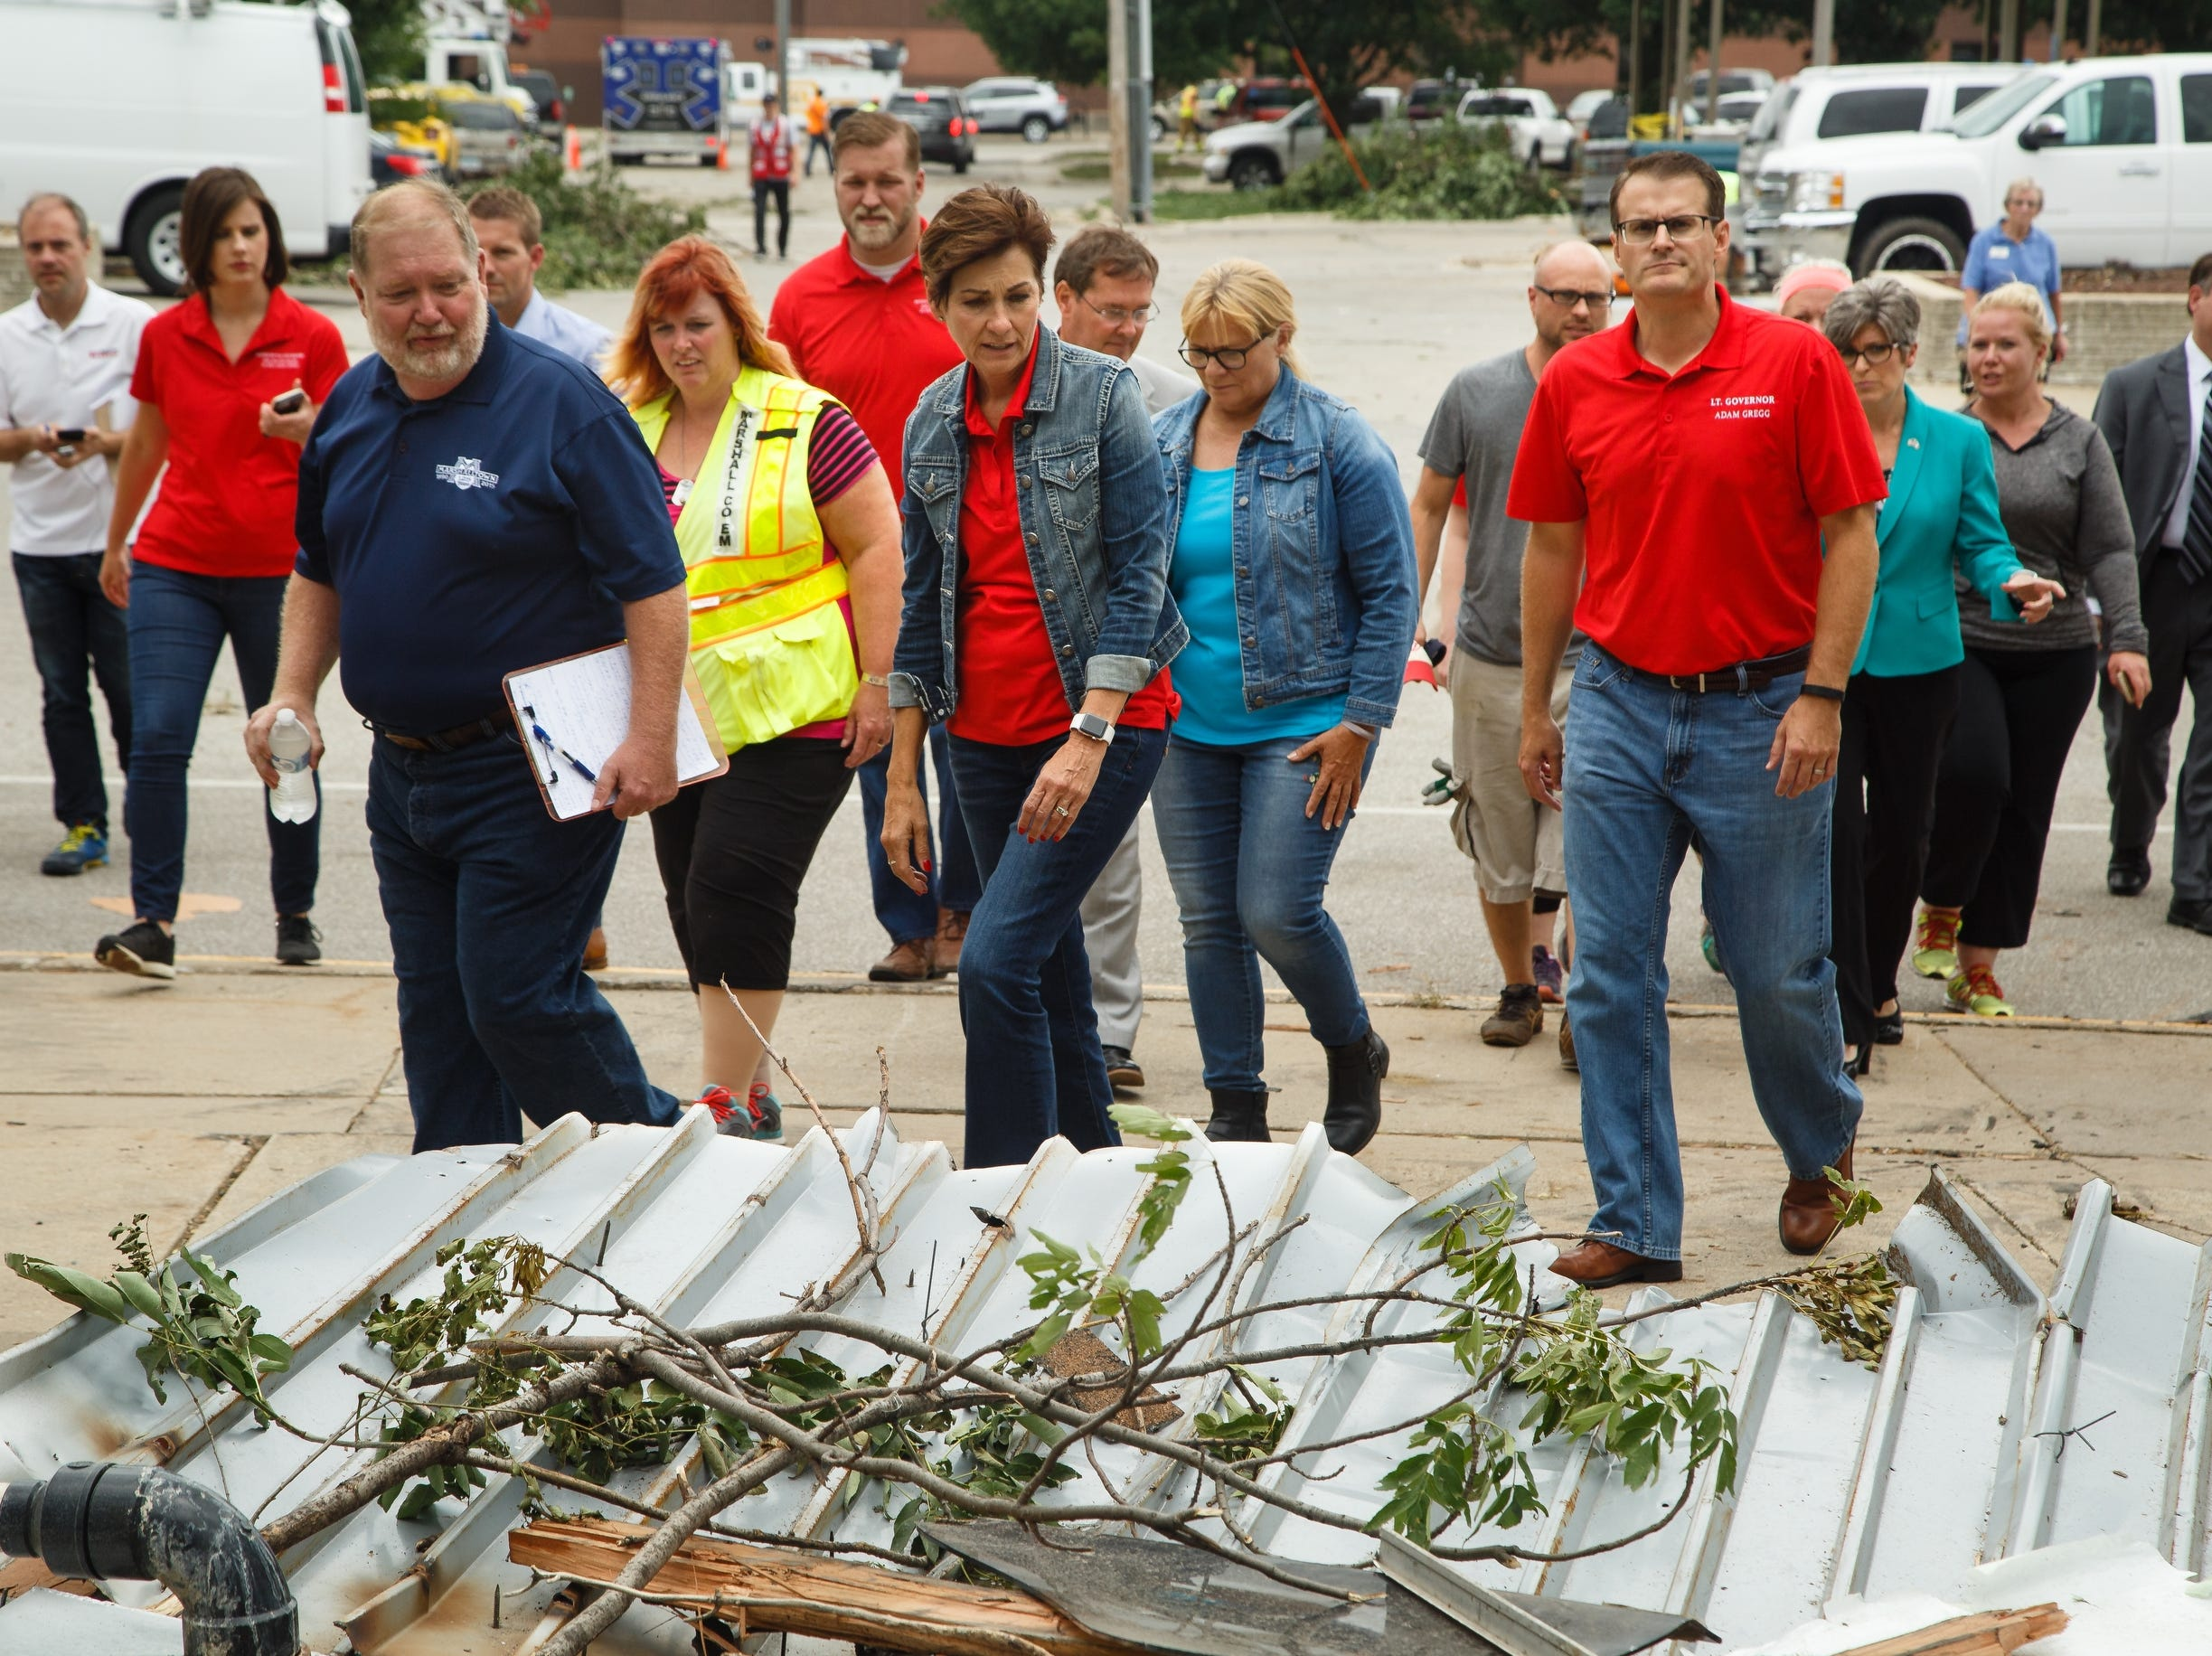 Iowa Governor Kim Reynolds tours the damage in Marshalltown with Lt. Gov. Adam Gregg, right, on Friday, July 20, 2018. Yesterday, tornadoes ripped through central Iowa causing major damage but only minor injuries have been reported so far.